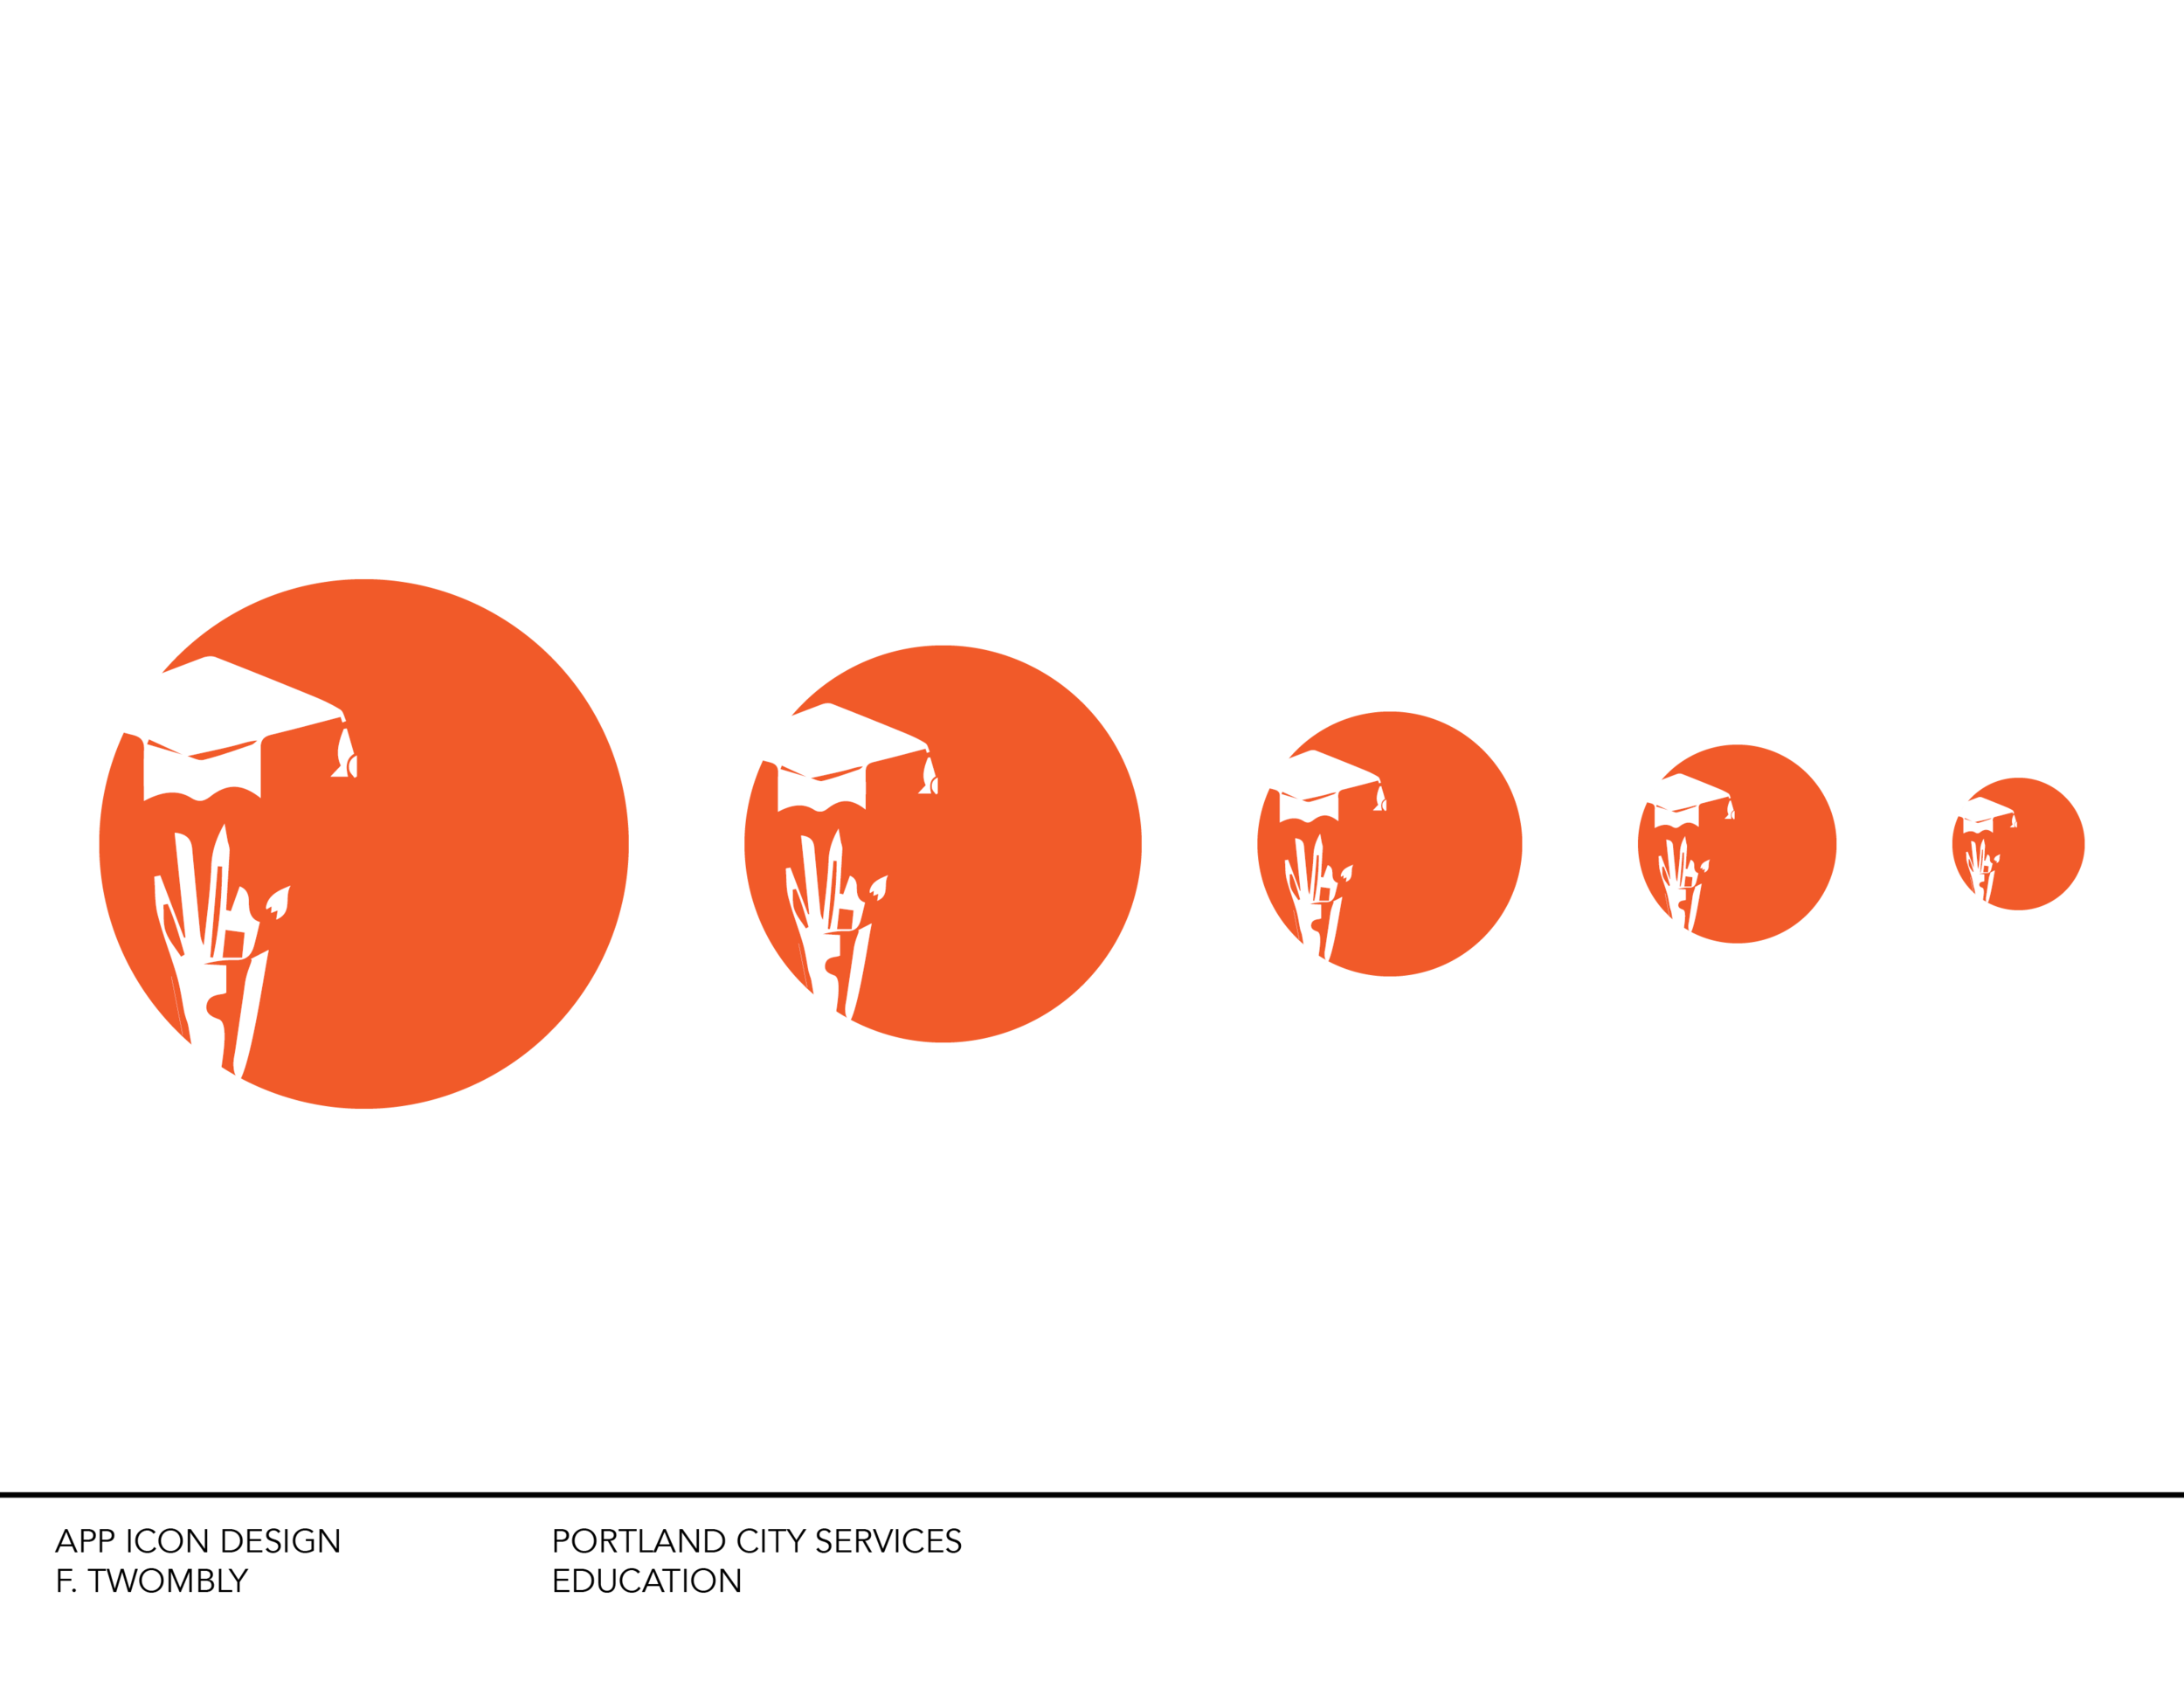 ftwombly_Portland_Icons_Final4.png